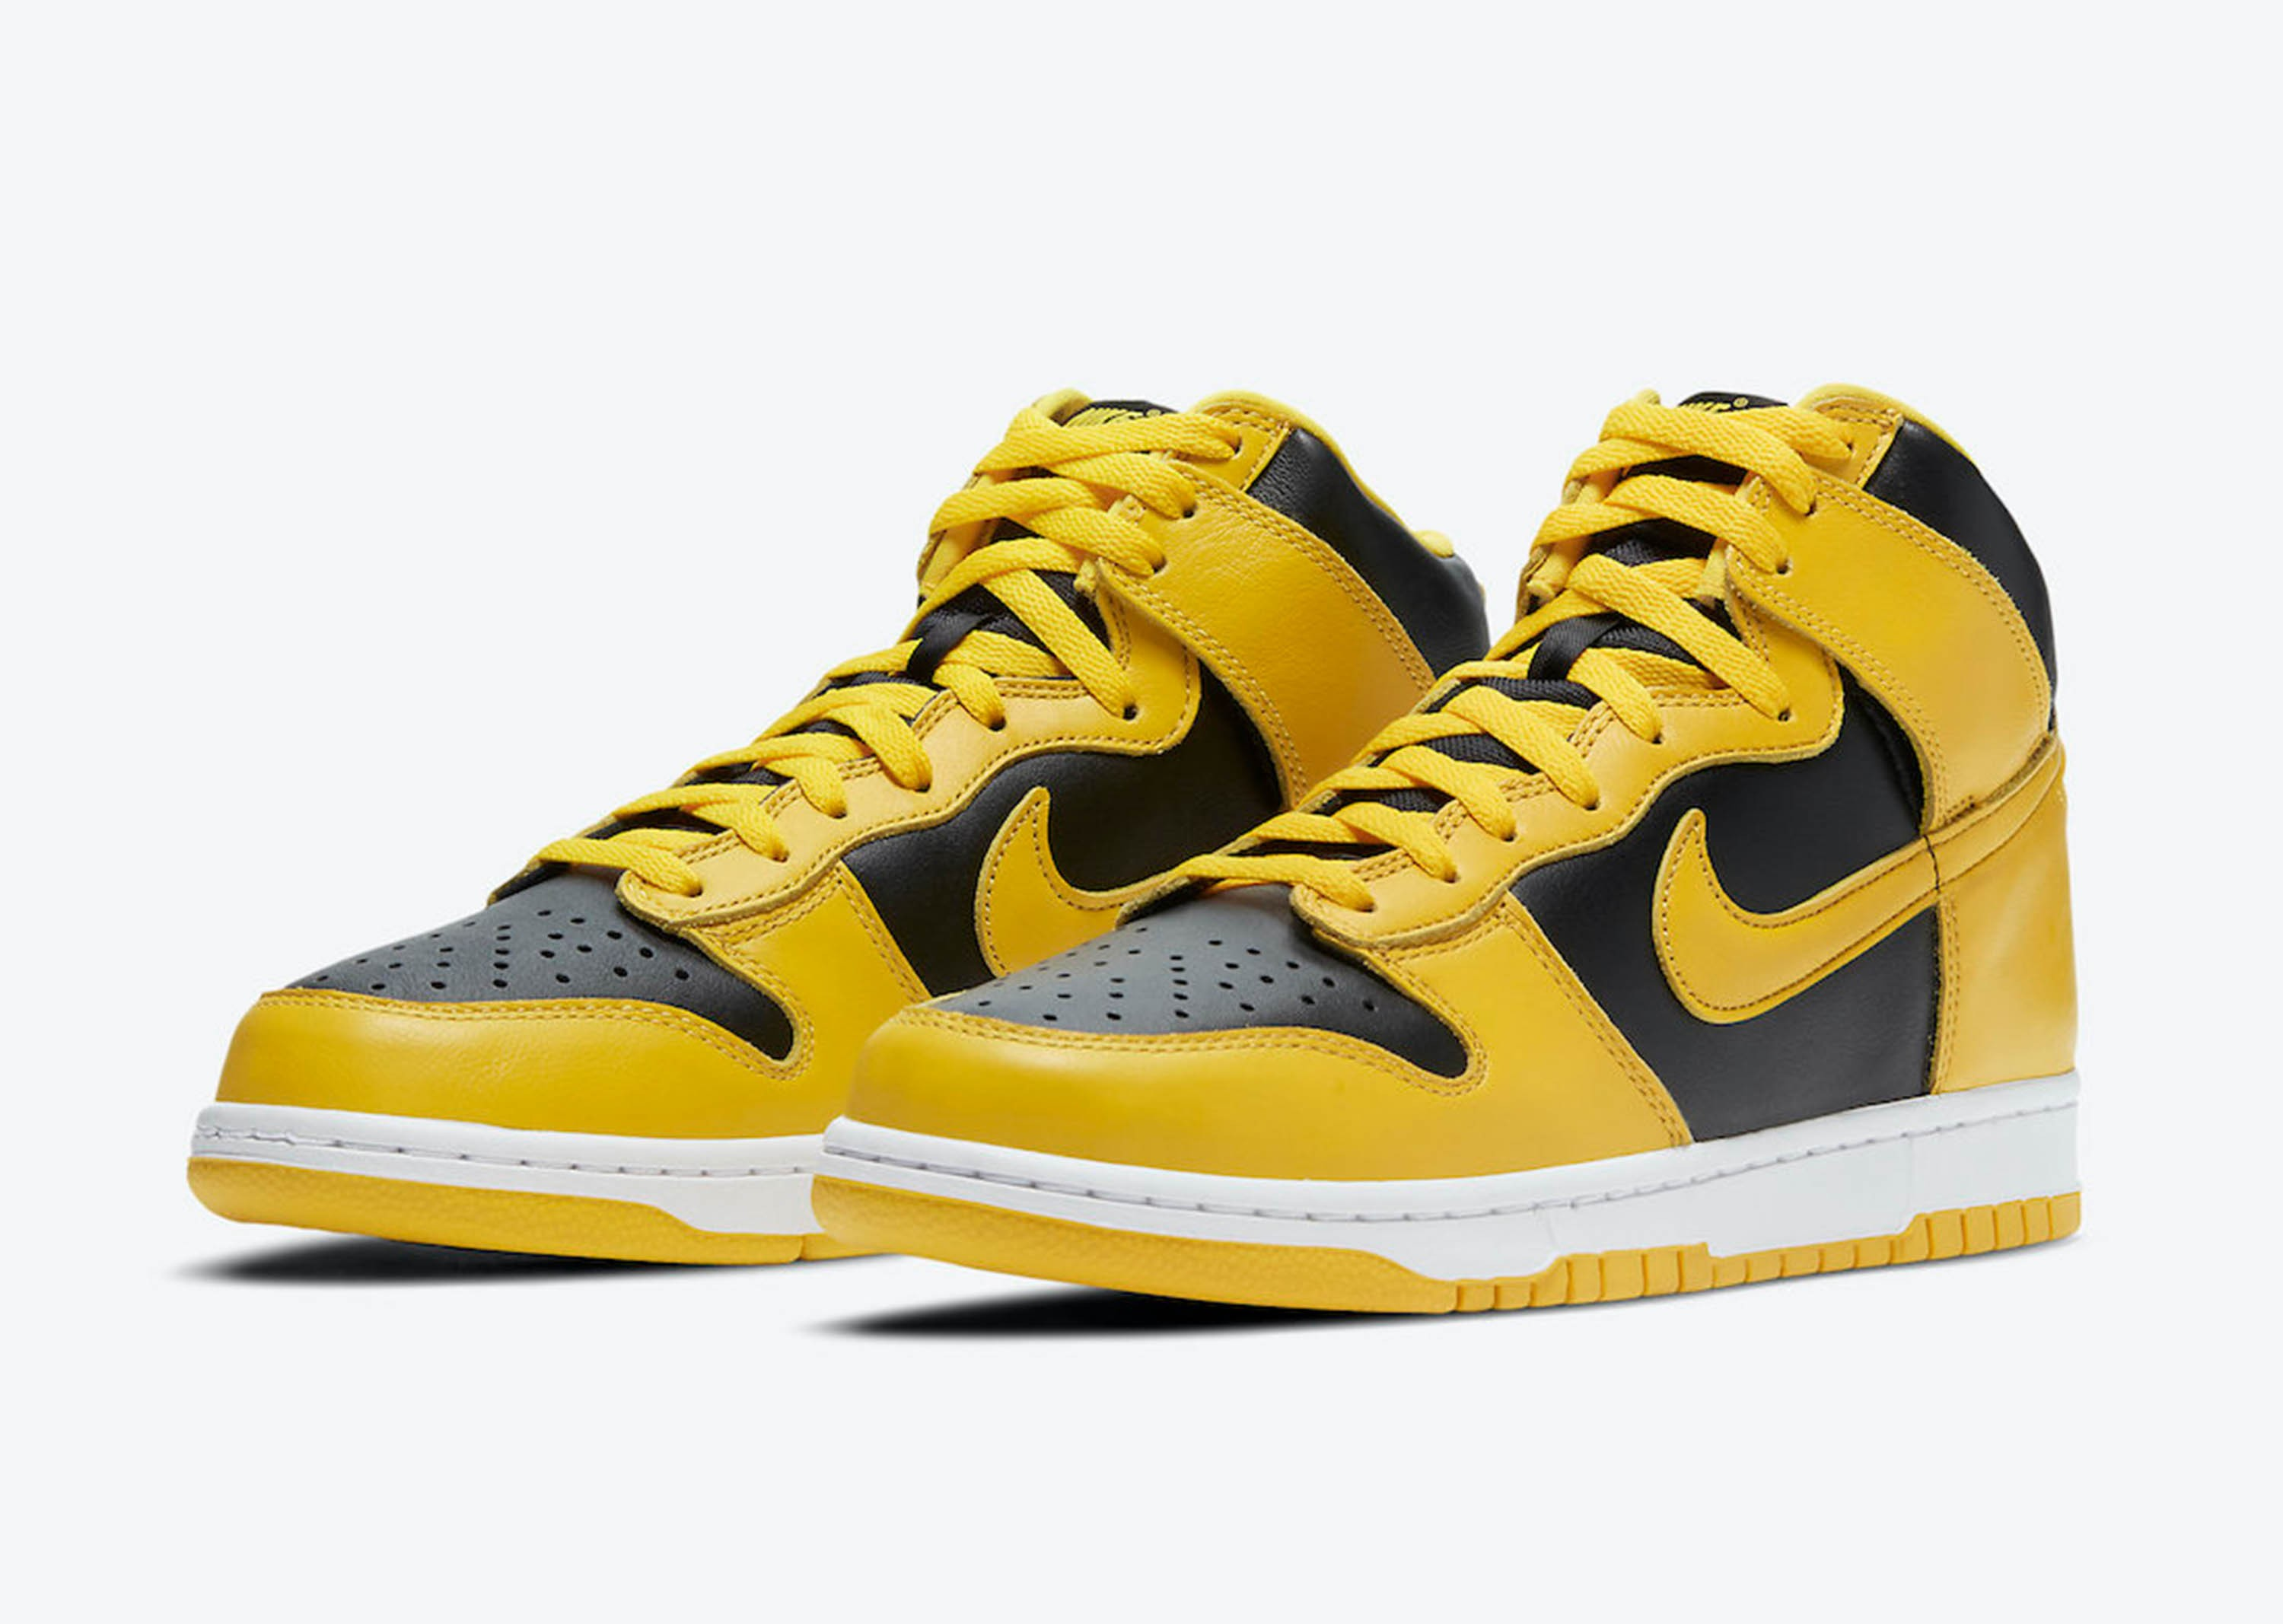 Dunk_High_Varsity_Maize_0000_Nike-Dunk-High-Varsity-Maize-CZ8149-002-Release-Date-Price-4